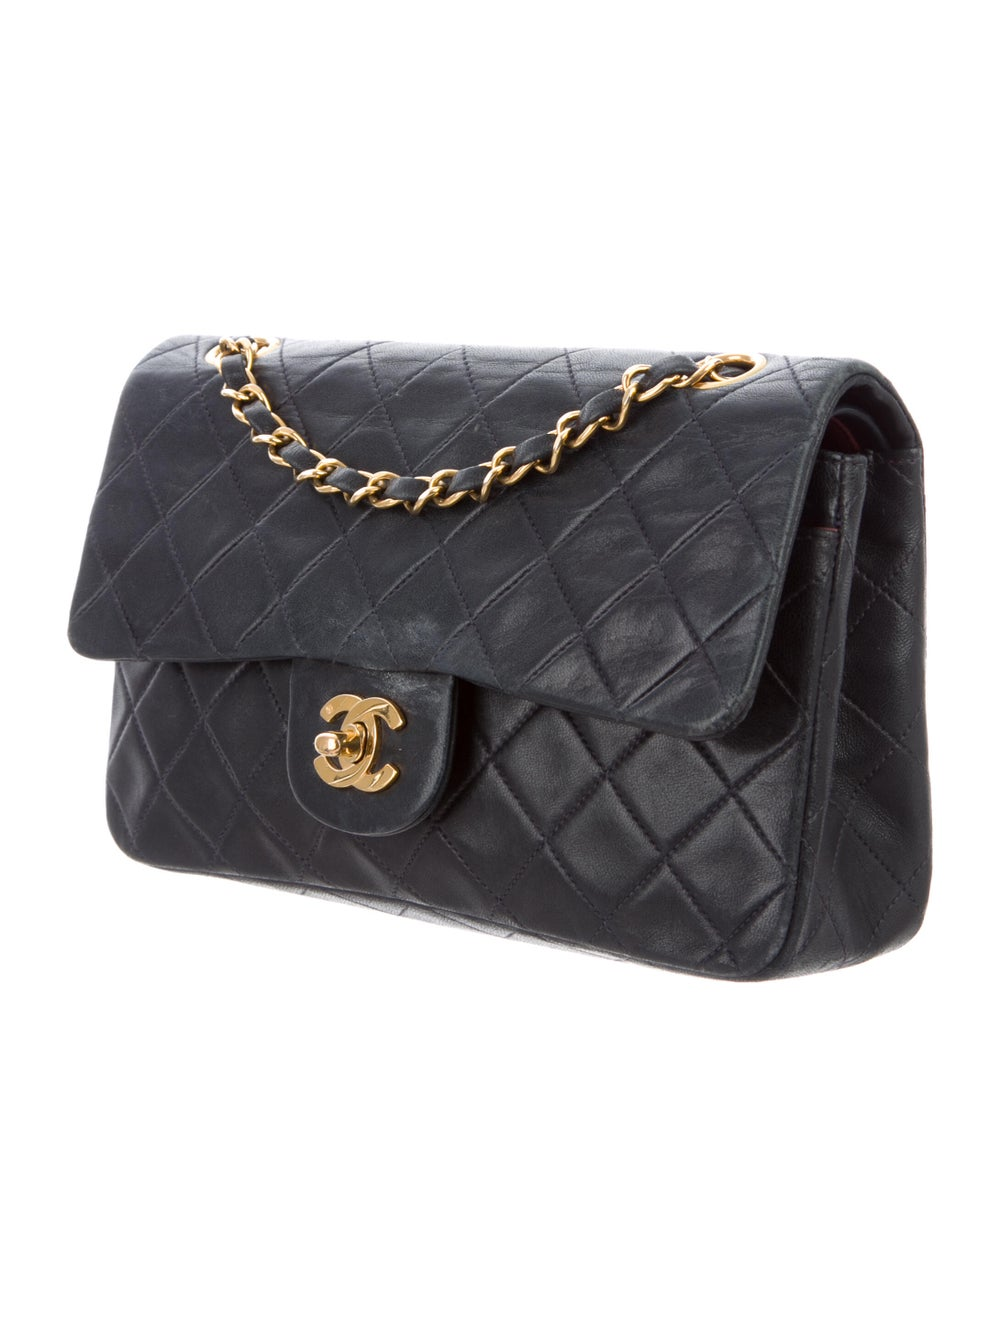 Chanel Small Classic Flap Bag Blue - image 3